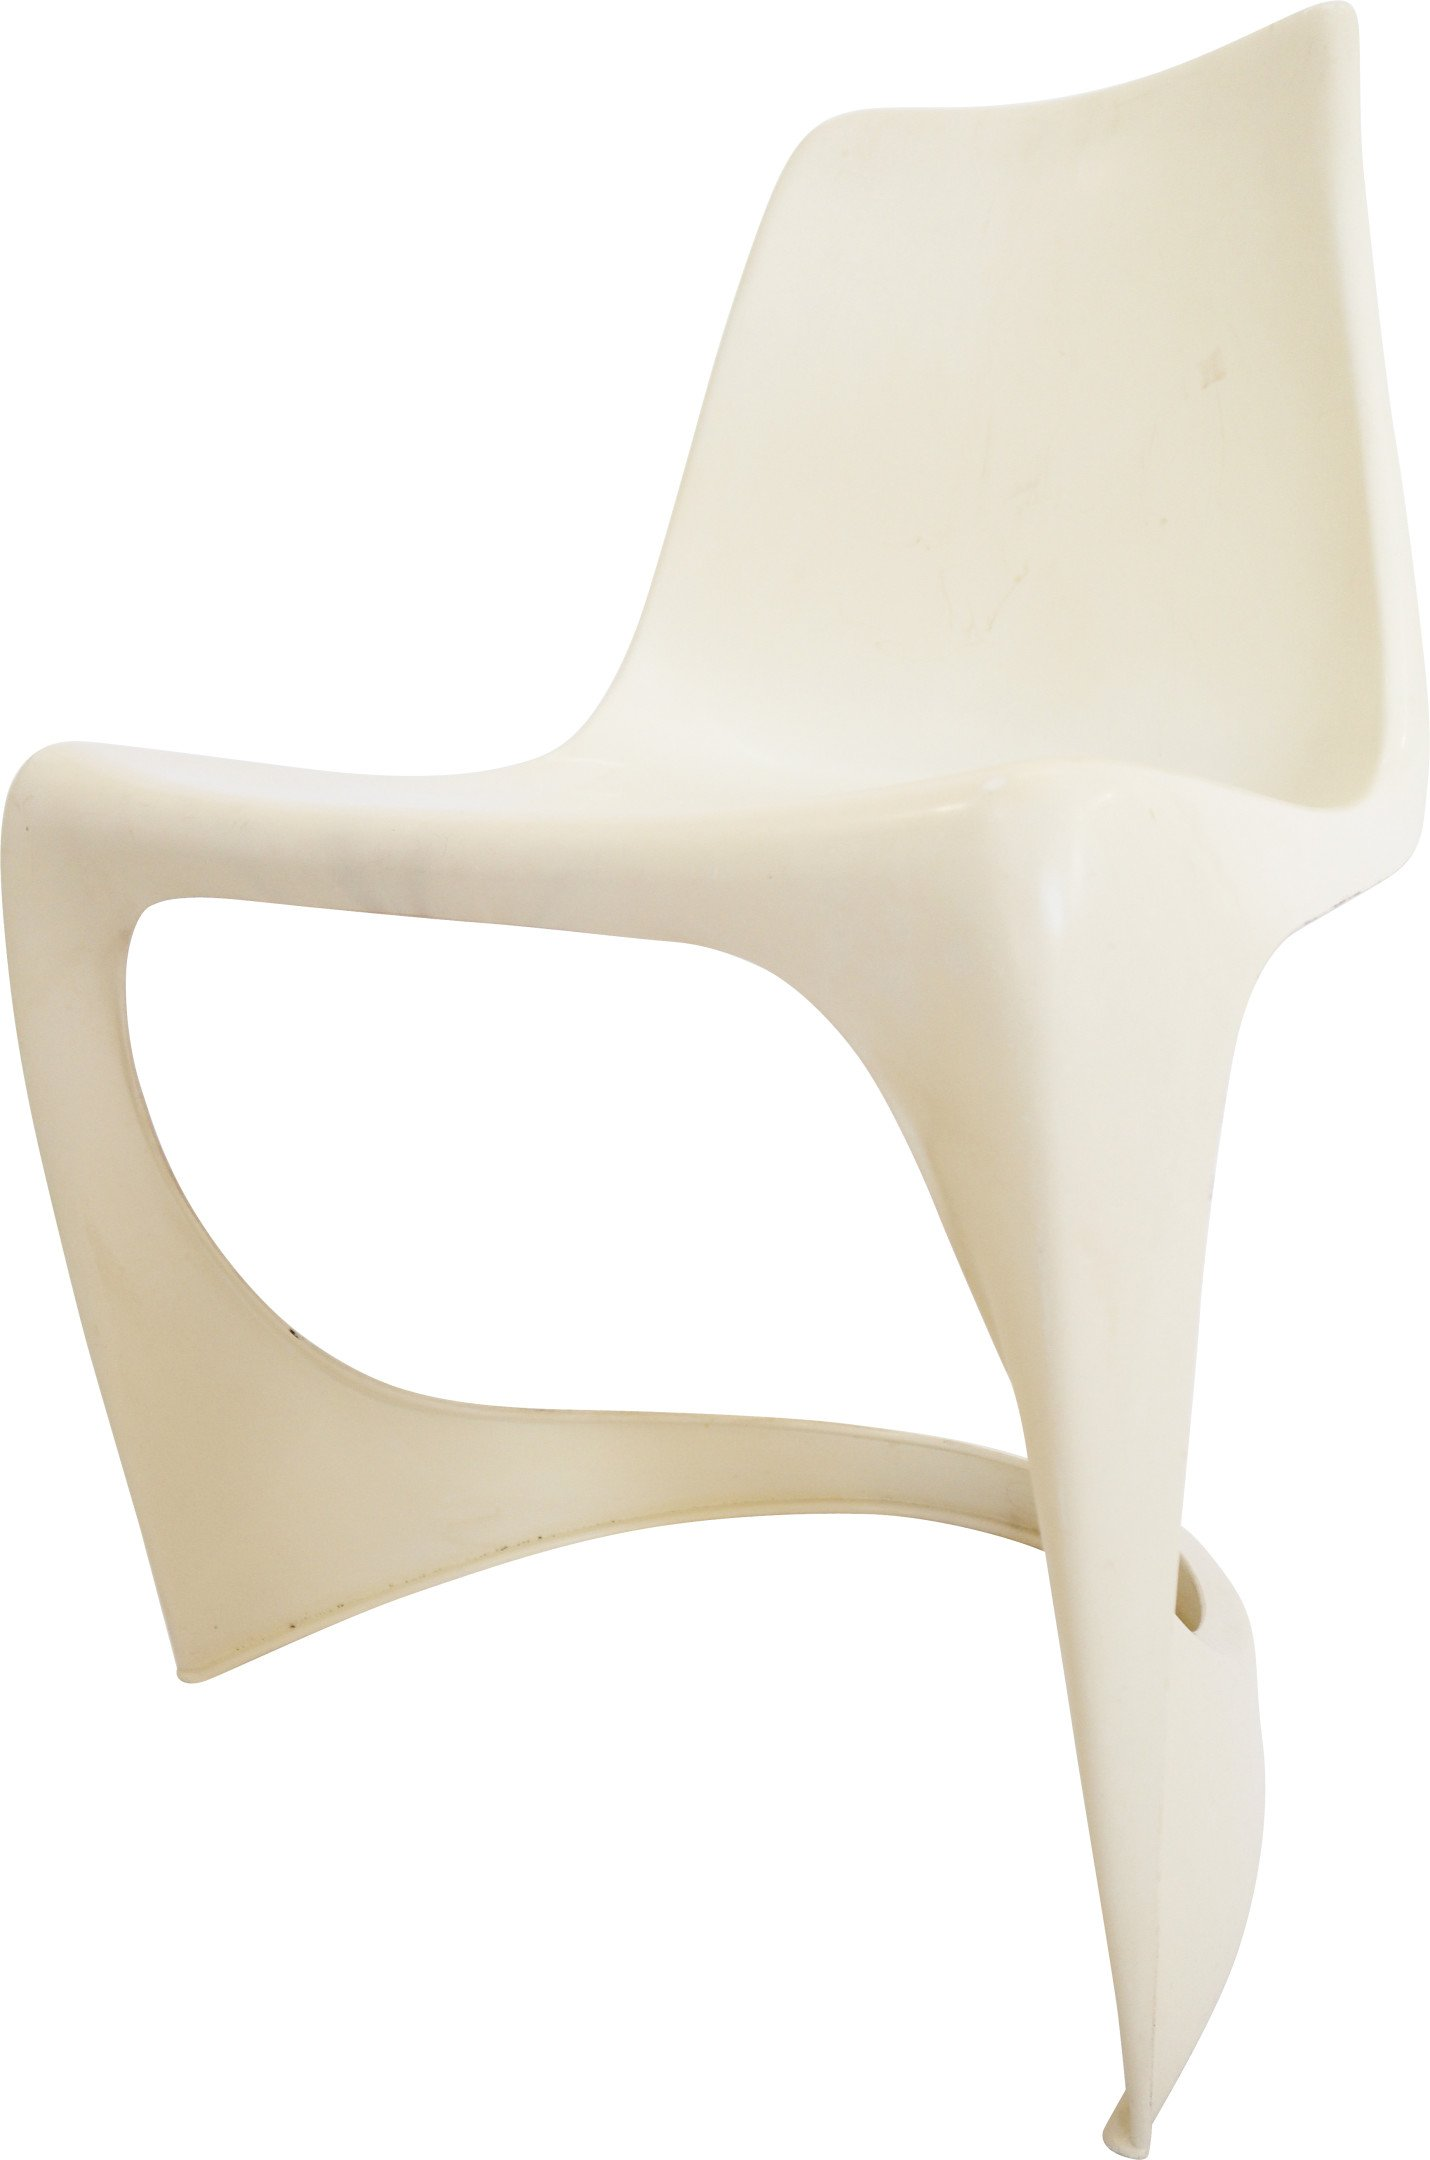 Chair by S. Østergaard, Cado, 1970s